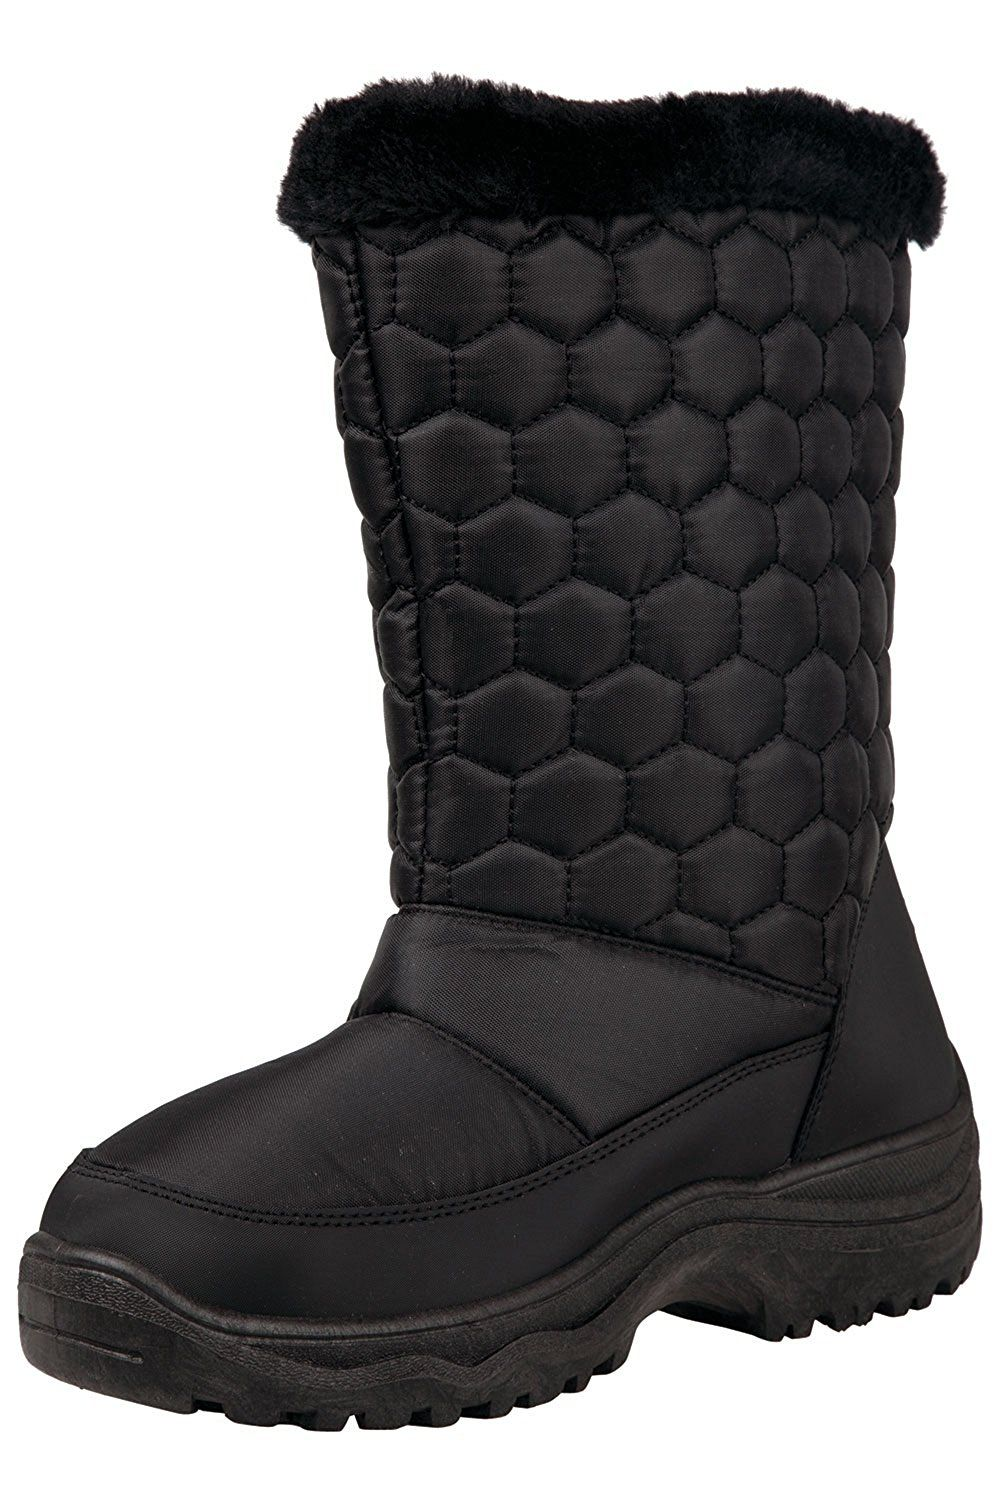 fe501db86b6 Mountain Warehouse Frosty Womens Fleece Lined Snow Boots > Don't get ...